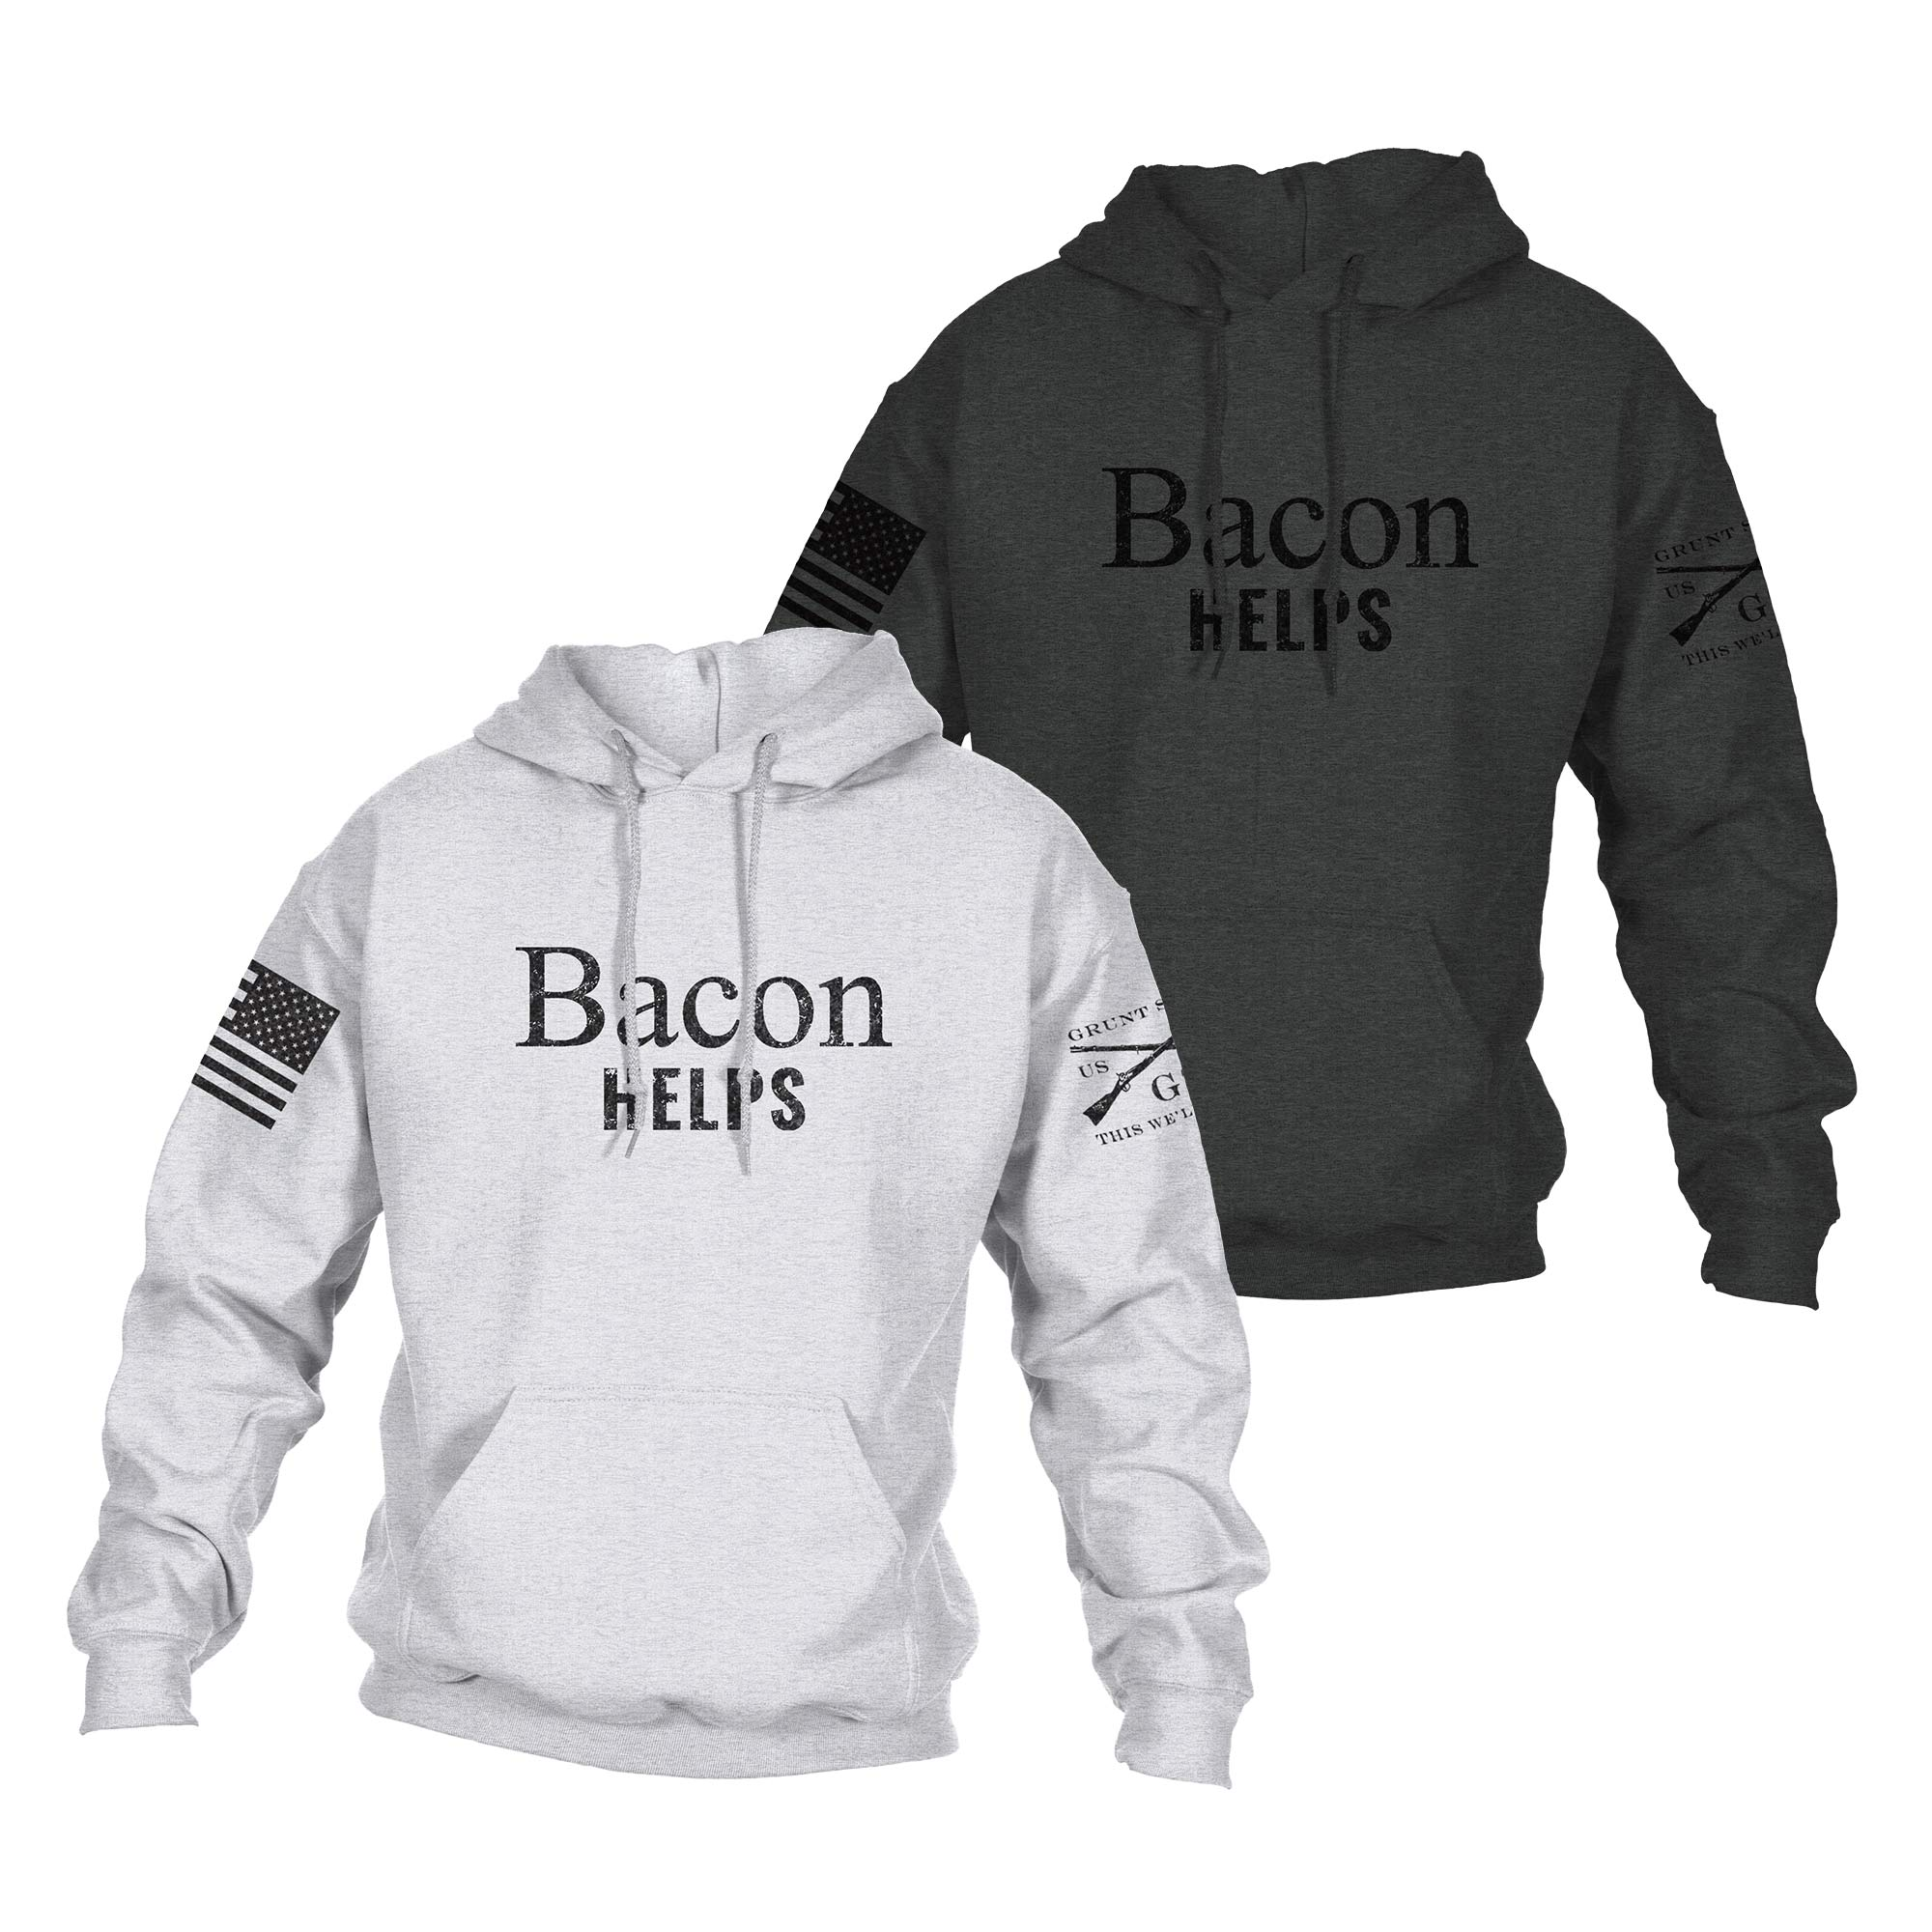 Bacon Helps Hoodie